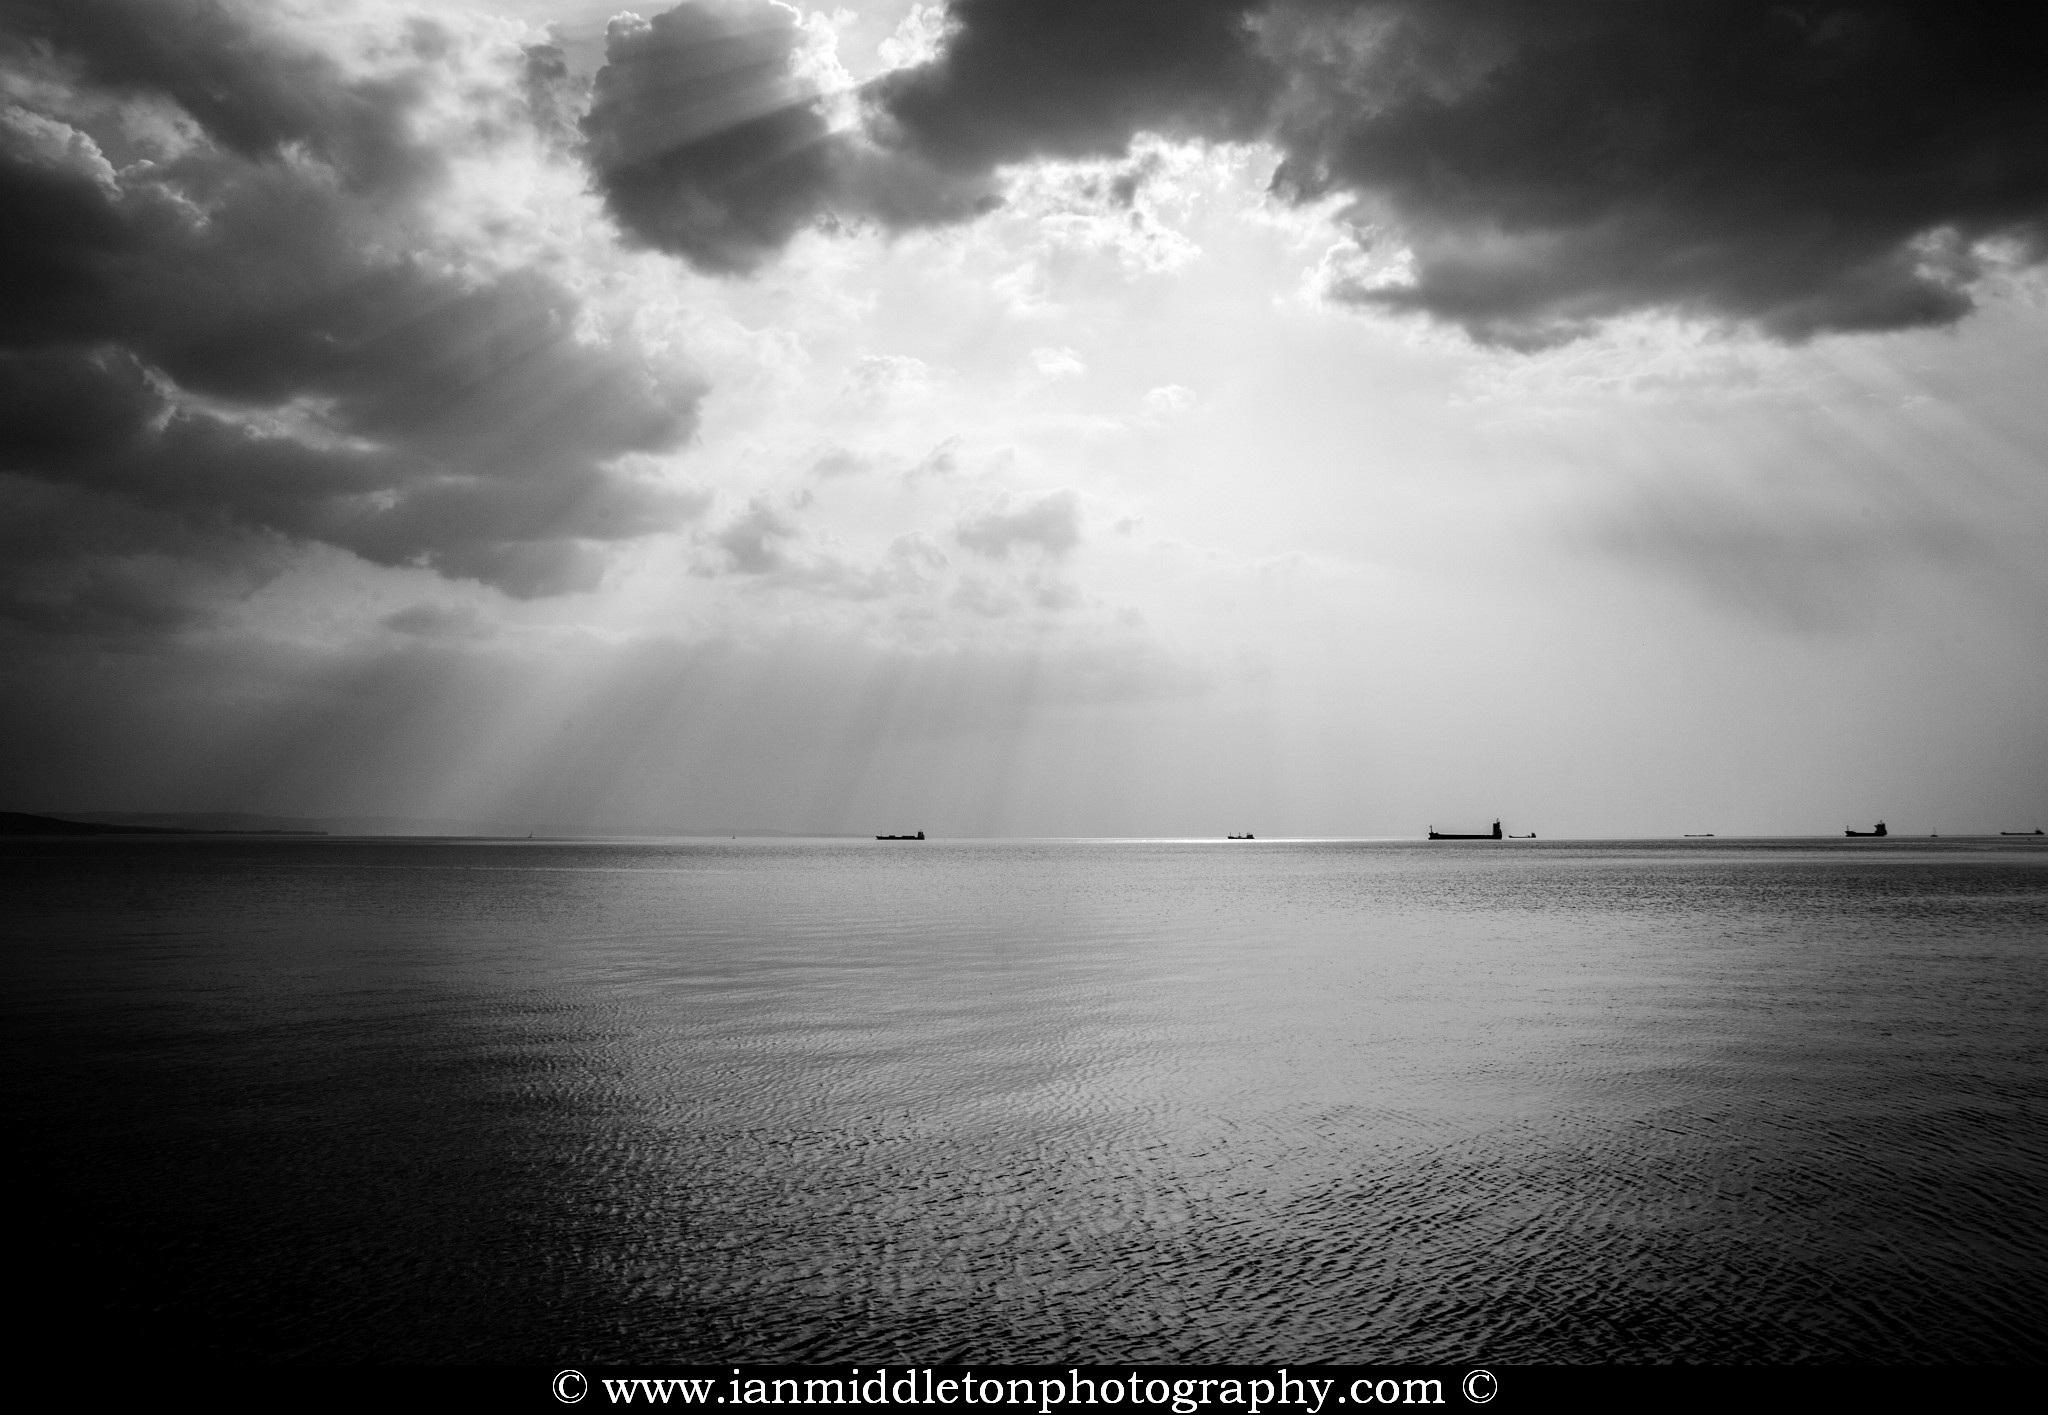 Scattered clouds produce beautiful rays of sunlight over the ships entering and leaving trieste Bay, Italy.